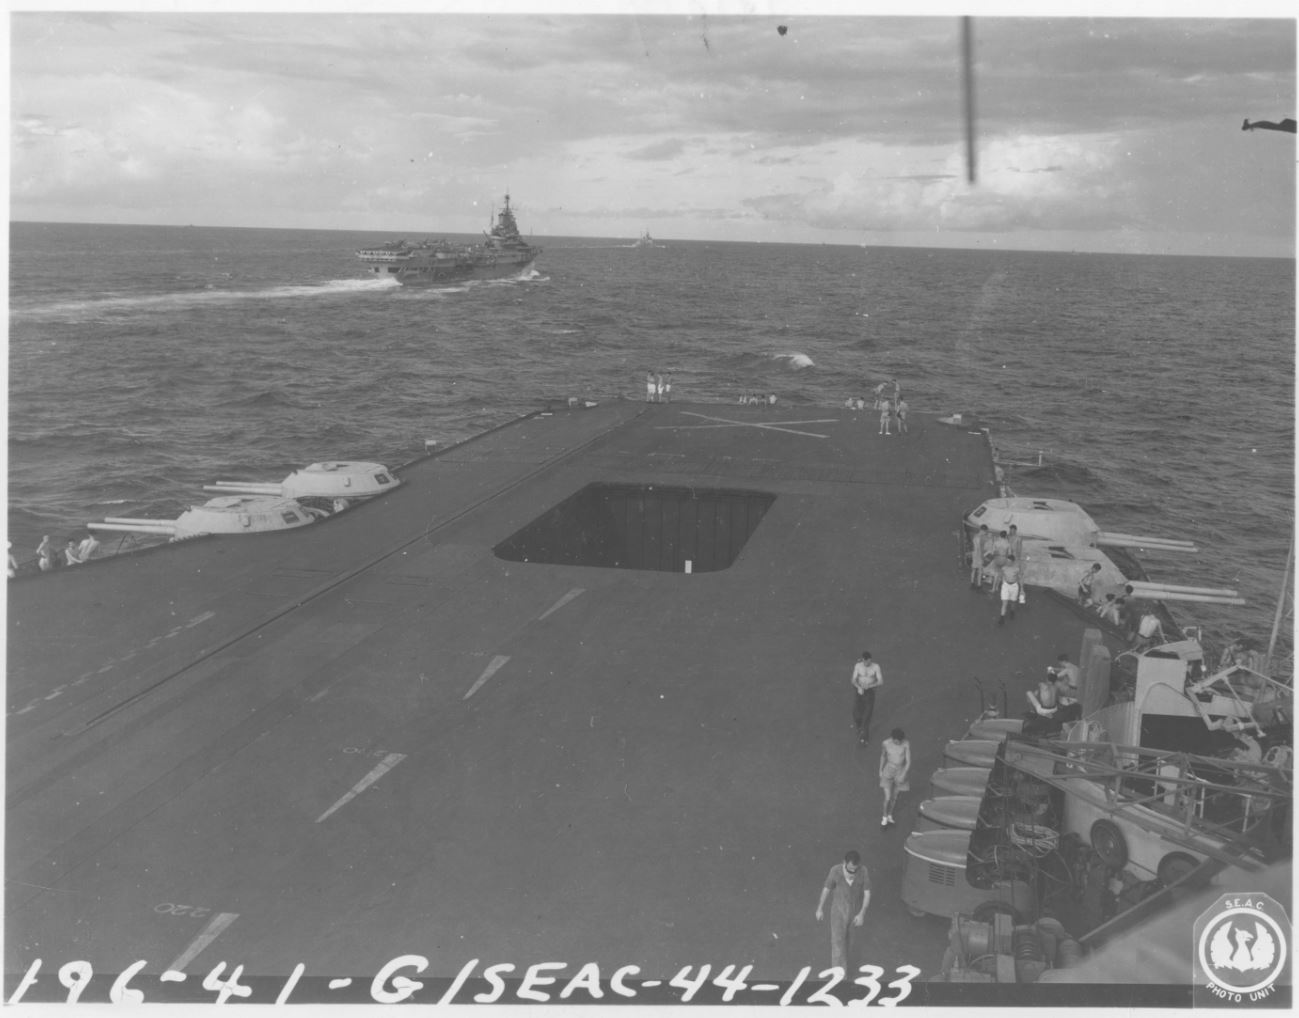 "Aboard the aircraft carrier HMS ""ILLUSTRIOUS""... HMS INDOMITABLE taken from ""Admiral's Platform"" on HMS ILLUSTRIOUS. Cruiser HMS Newcastle in the background. Fleet is on way back to Trincomalee Ceylon. SEAC photo unit (US). Photographer: PFC Russell Scott. December 16 thru 23, 1944."